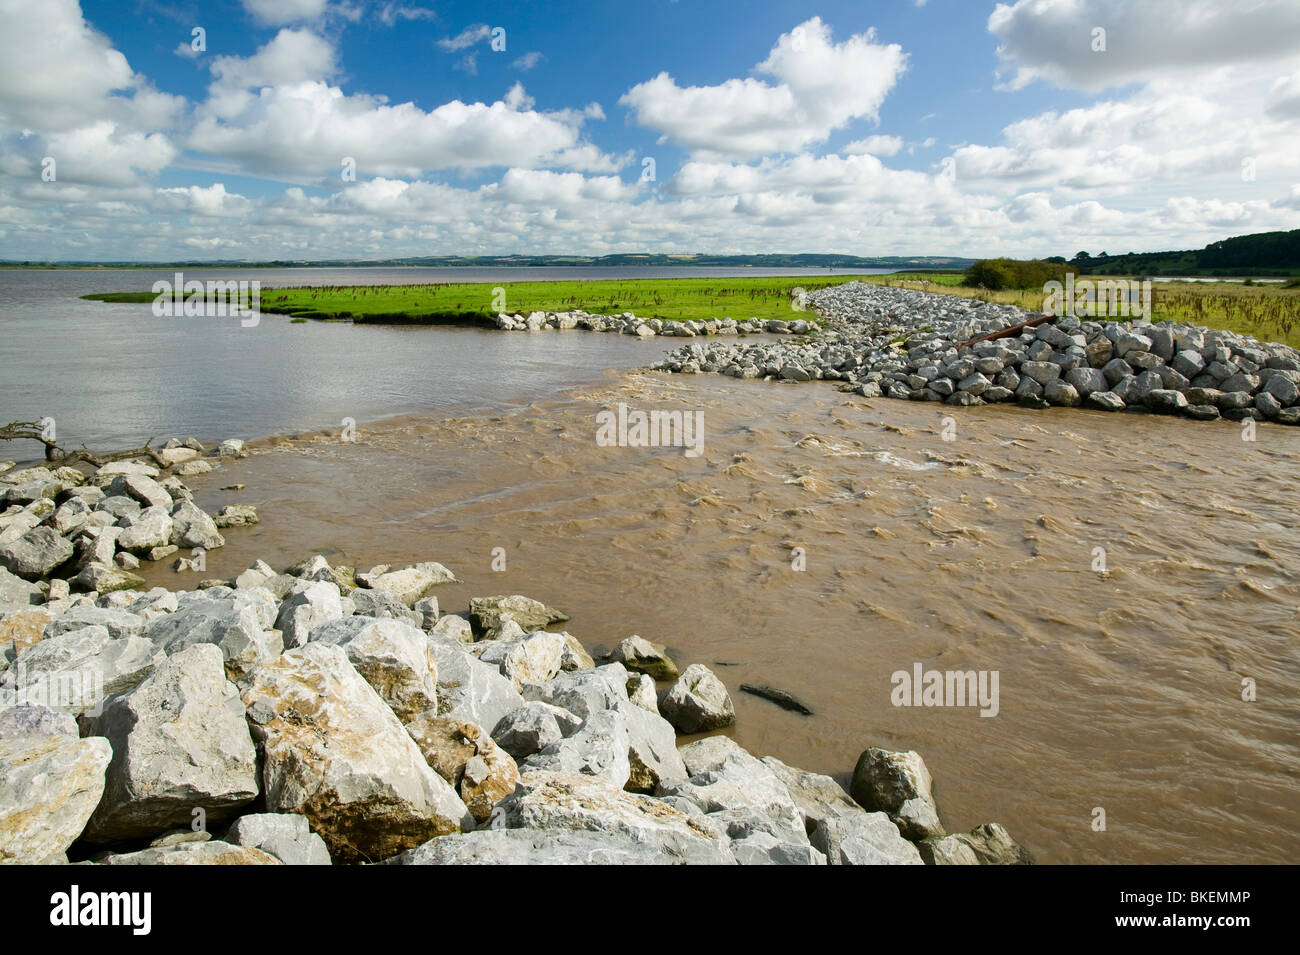 The Breach at Alkborough on the Humber Estuary in Eastern England, the UK's largest example of managed retreat. - Stock Image